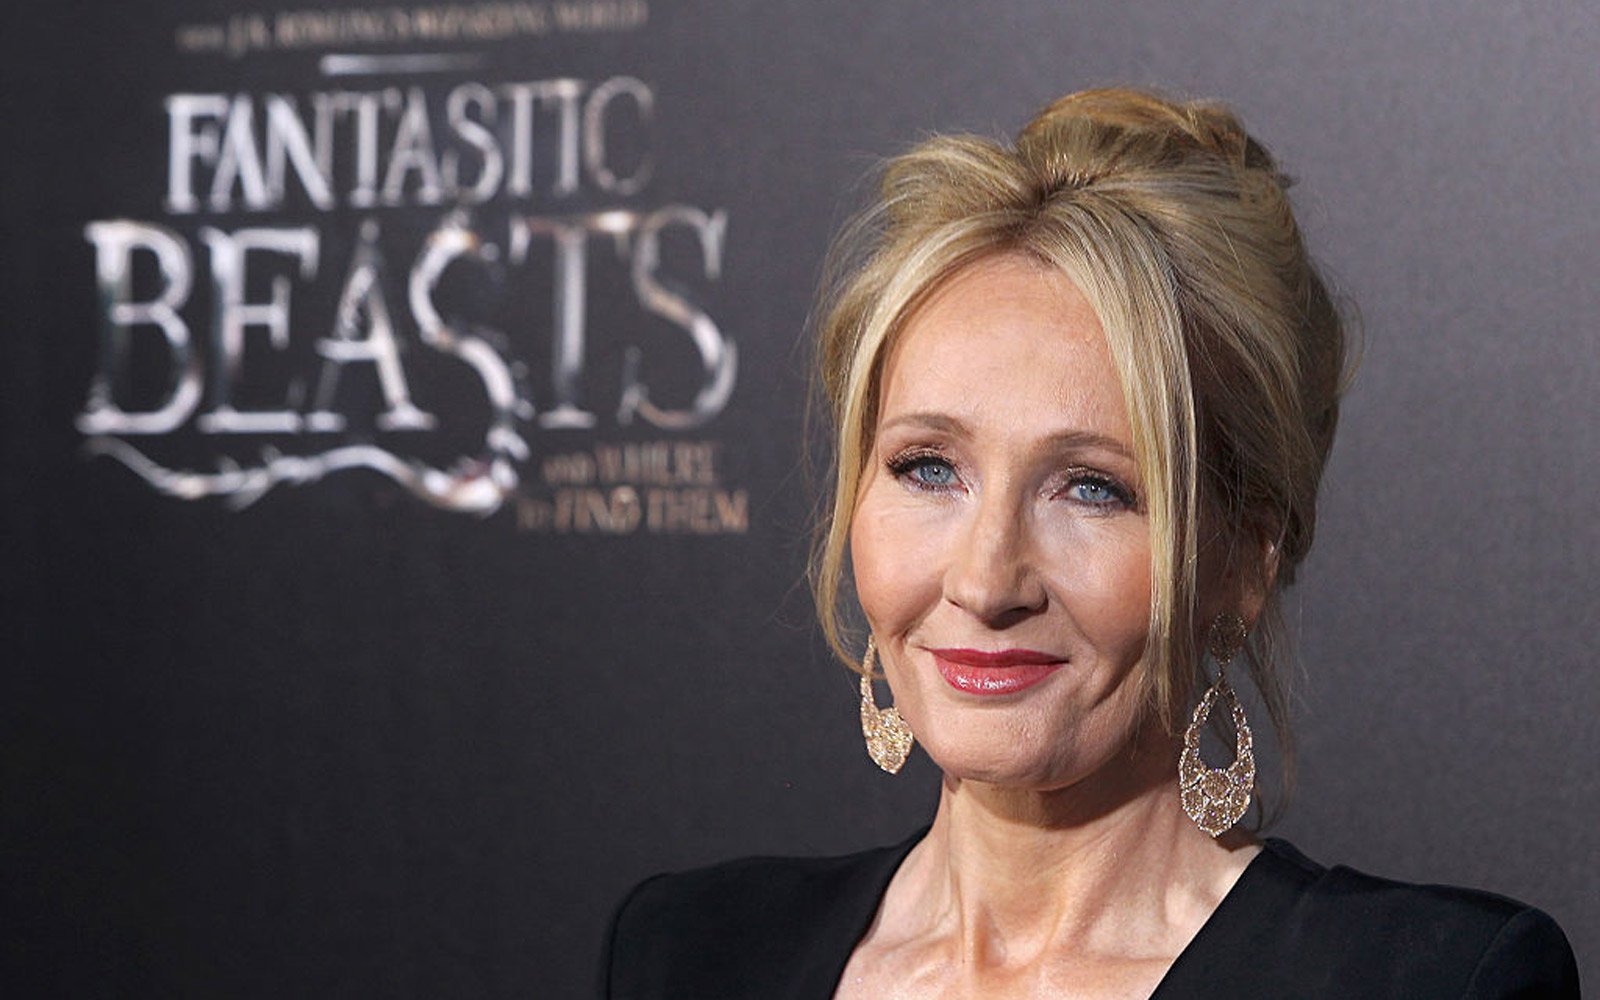 """NEW YORK, NY - NOVEMBER 10:  Novelist J. K. Rowling attends the """"Fantastic Beasts And Where To Find Them"""" world premiere at Alice Tully Hall, Lincoln Center on November 10, 2016 in New York City."""